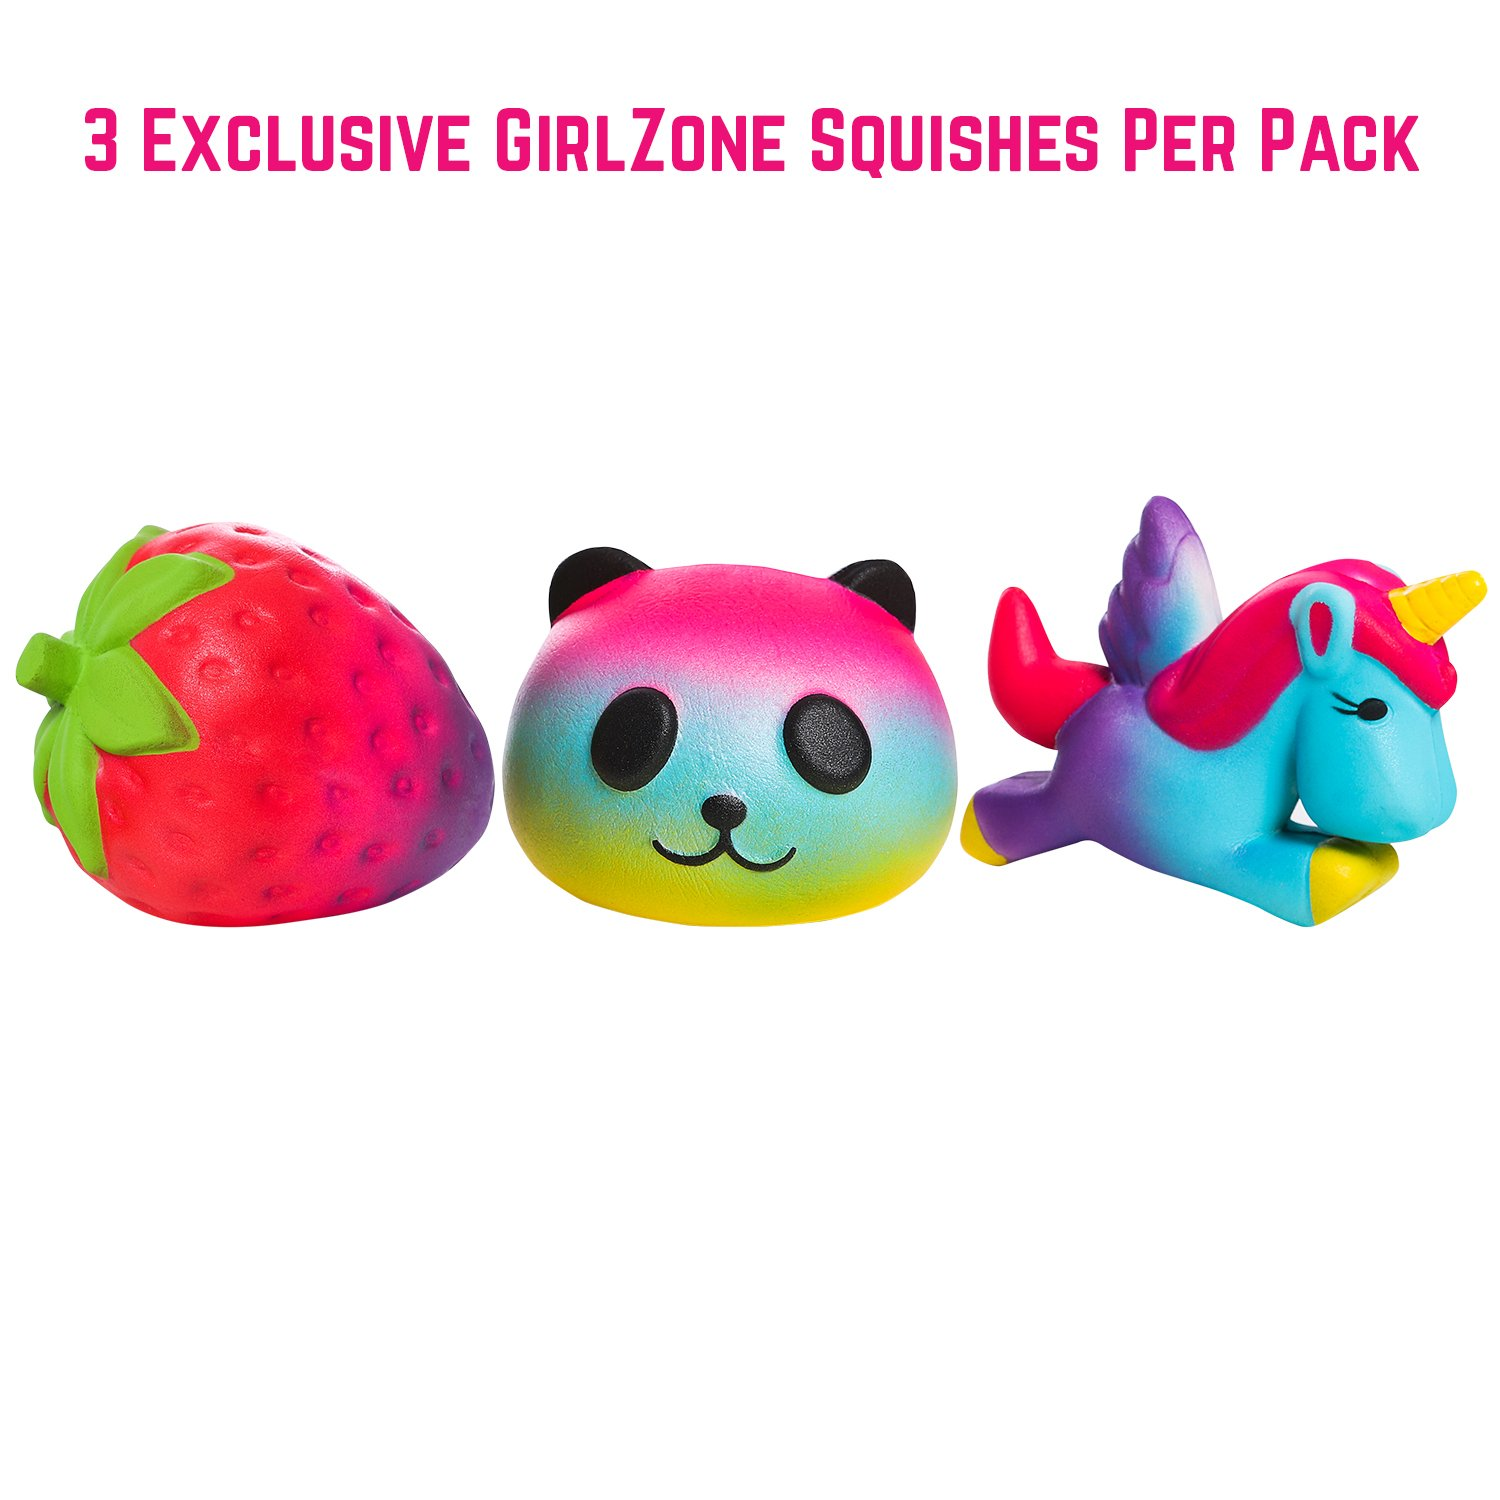 GirlZone Gifts for Girls: Set of 3 Slow Rising Squishies, Unique Colors, Stress Reducing, Scented Squishy, Birthday Present Gift for Girls Age 4 5 6 7 8 9+ by GirlZone (Image #8)